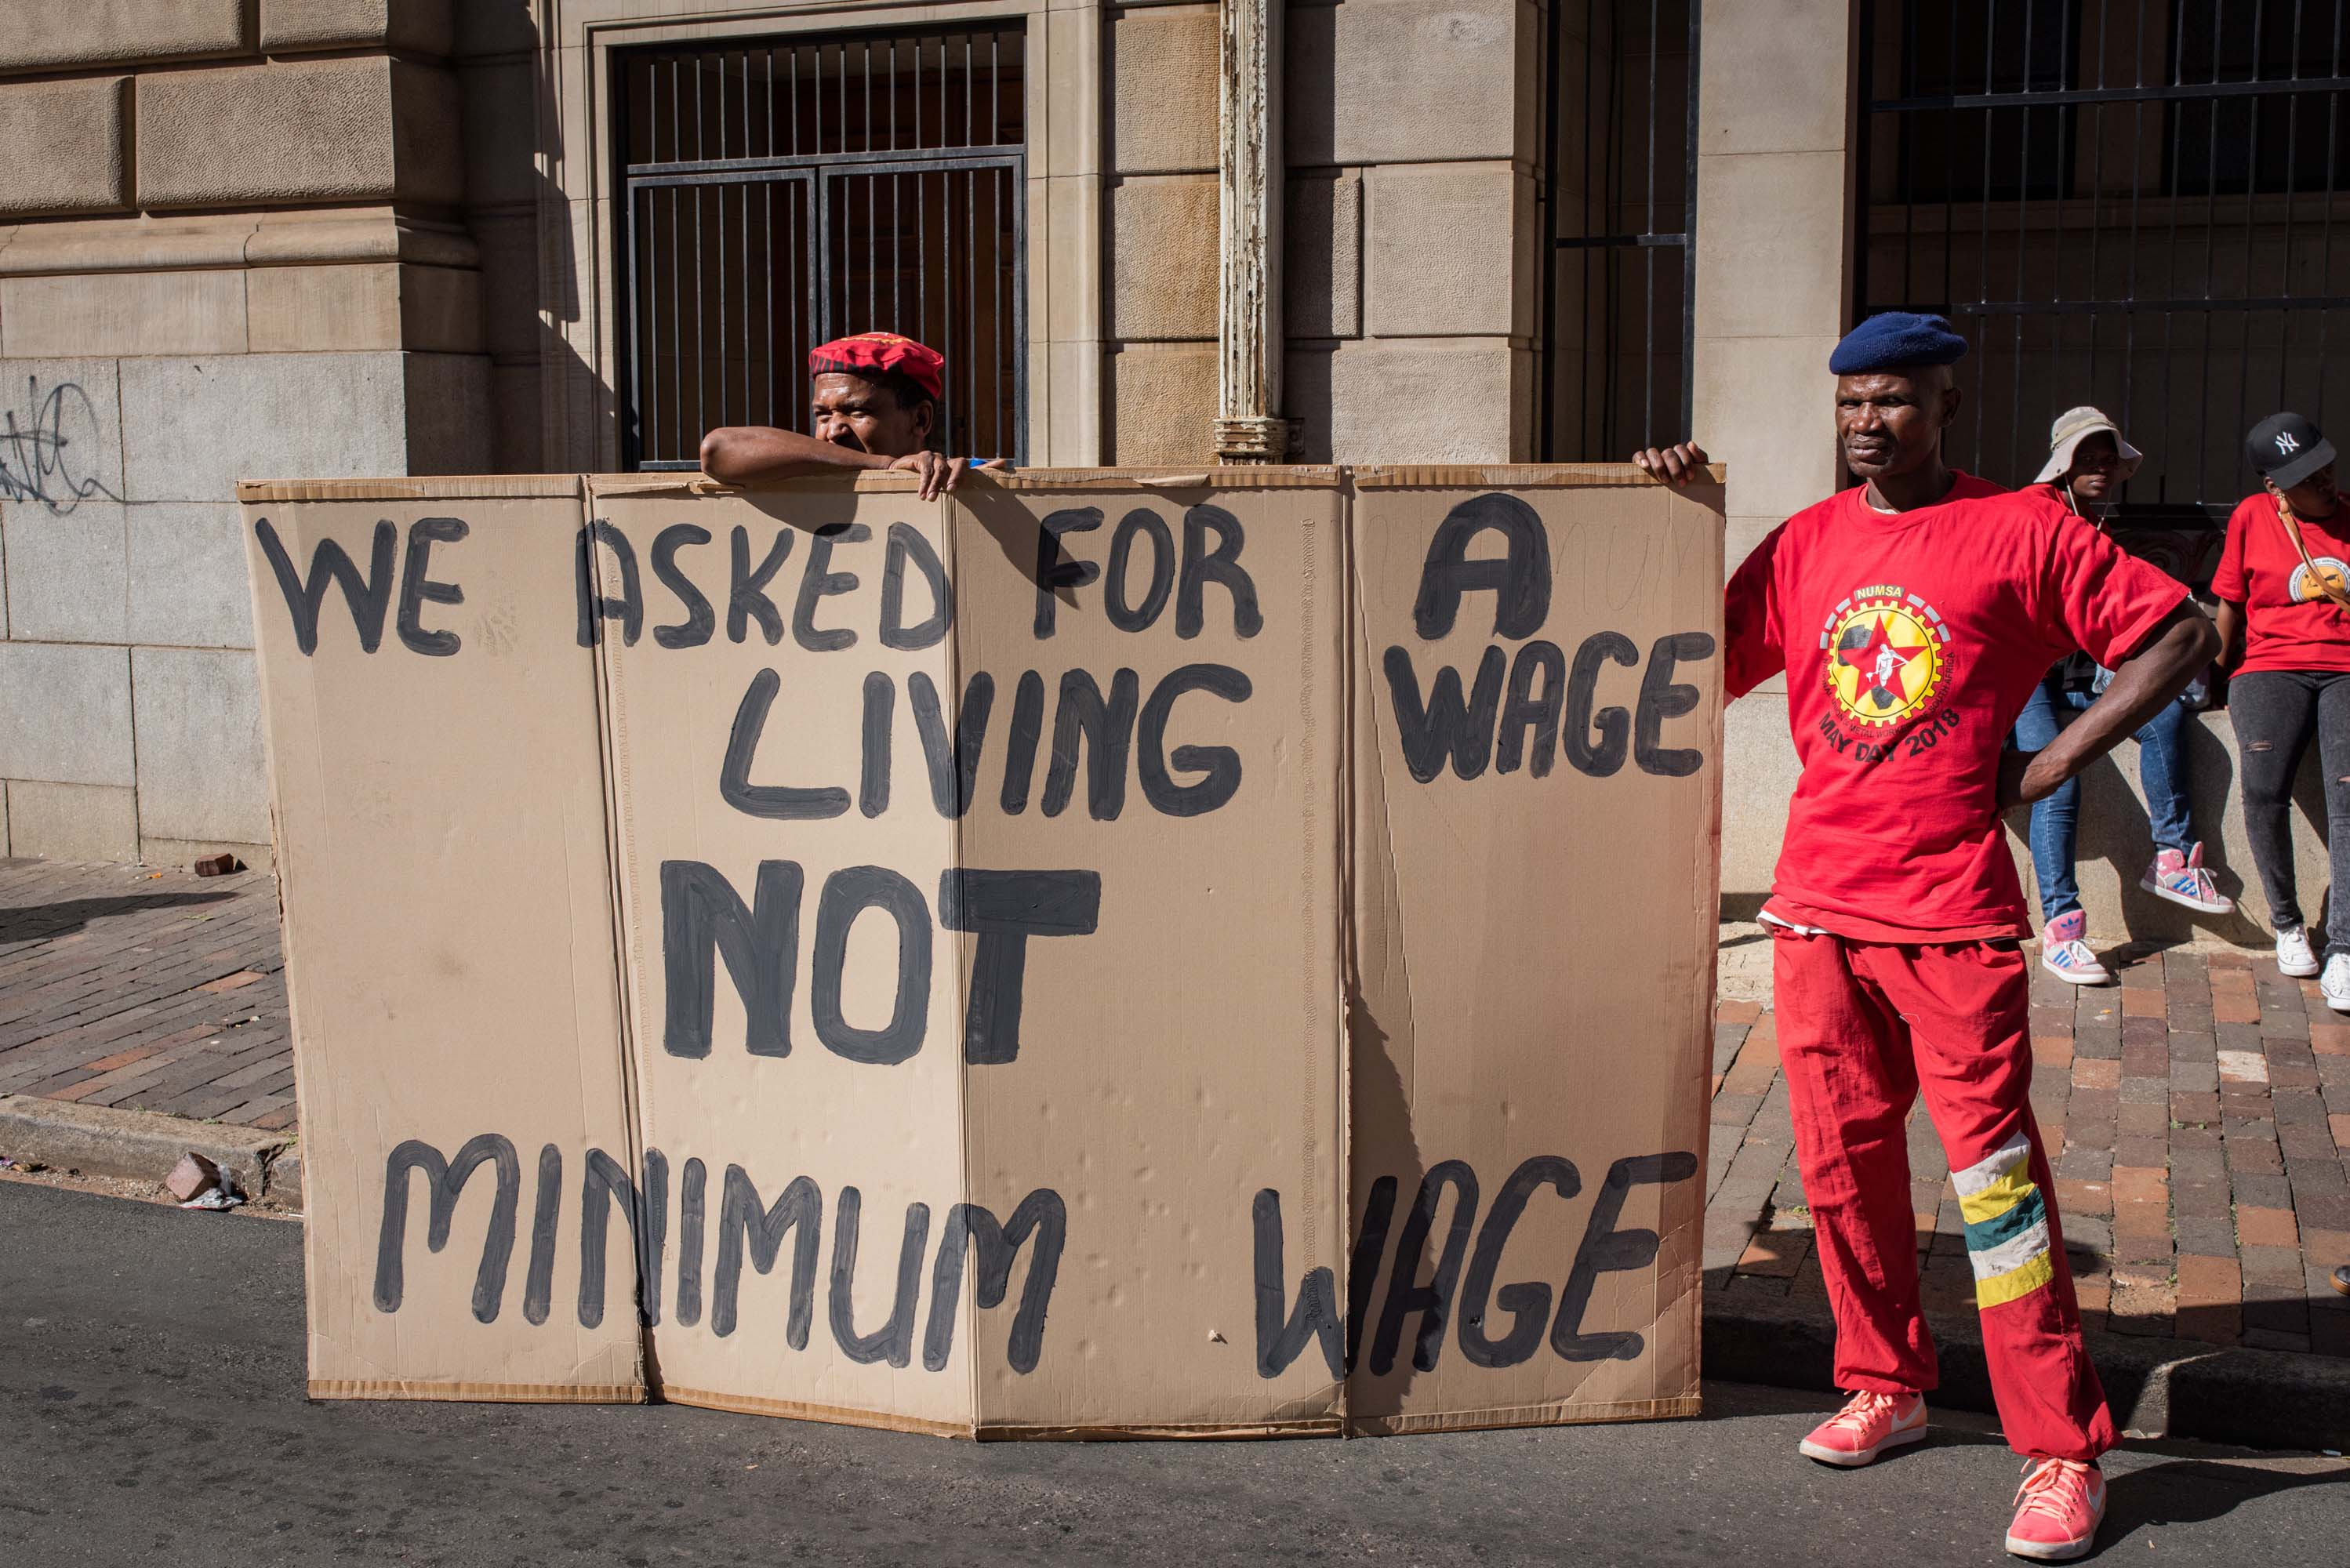 25 April 2018: Thousands of South African Federation of Trade Unions members marched through central Johannesburg as a part of the trade union's national shutdown. Protests against the proposed minimum wage of R20 an hour were held across South Africa.